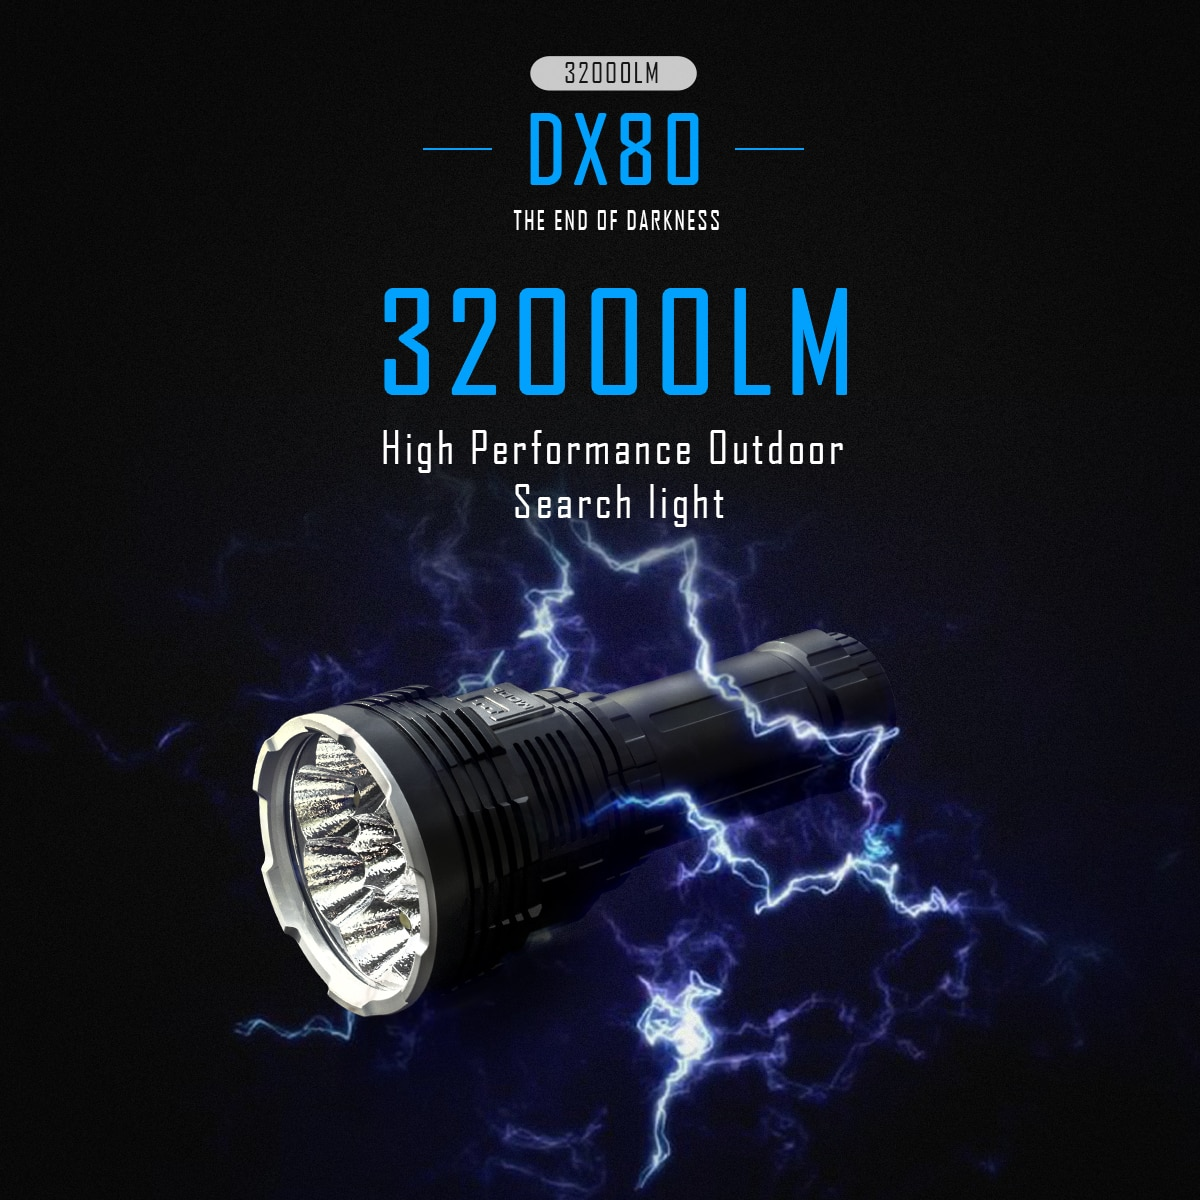 super torch search light imalent dx80 8 cree xhp70 max 32000 lumen beam distance 806 meter led flashlight for hunting IMALENT DX80 Powerful Flashlight Lantern LED Rechargeable 32000Lumen Ultra Bright Waterproof Flashlight Torch Cree Xhp70.2